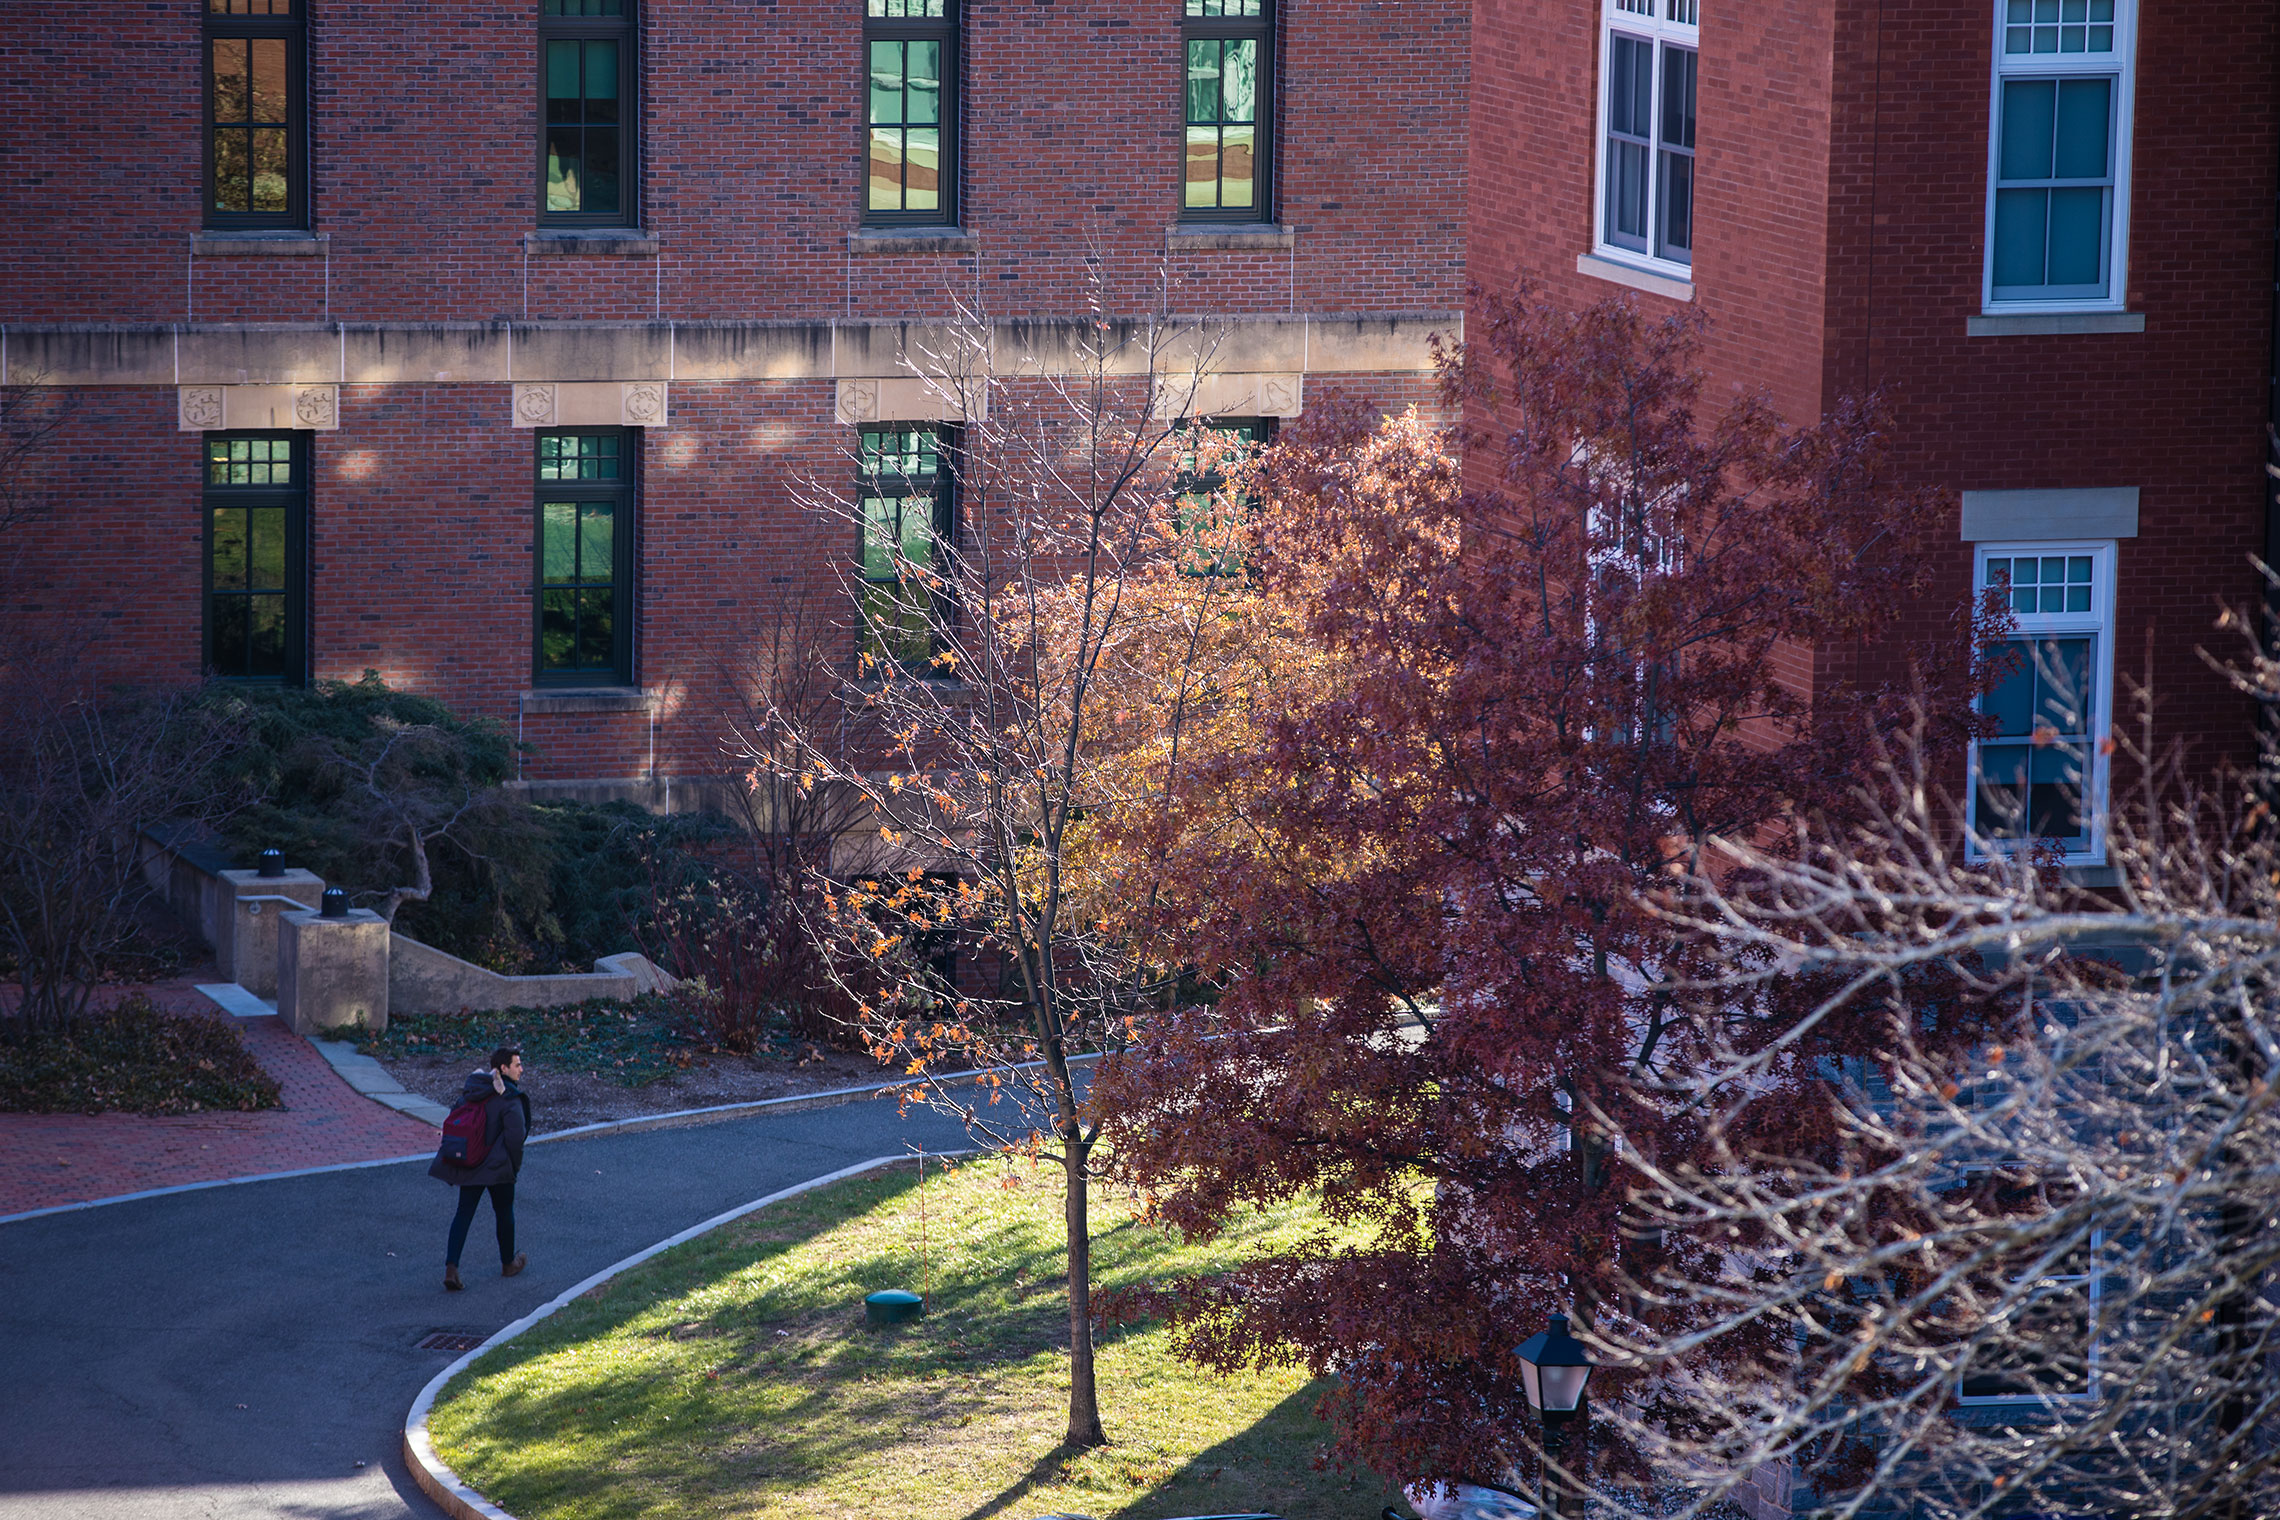 Late afternoon light on the campus of Amherst College.